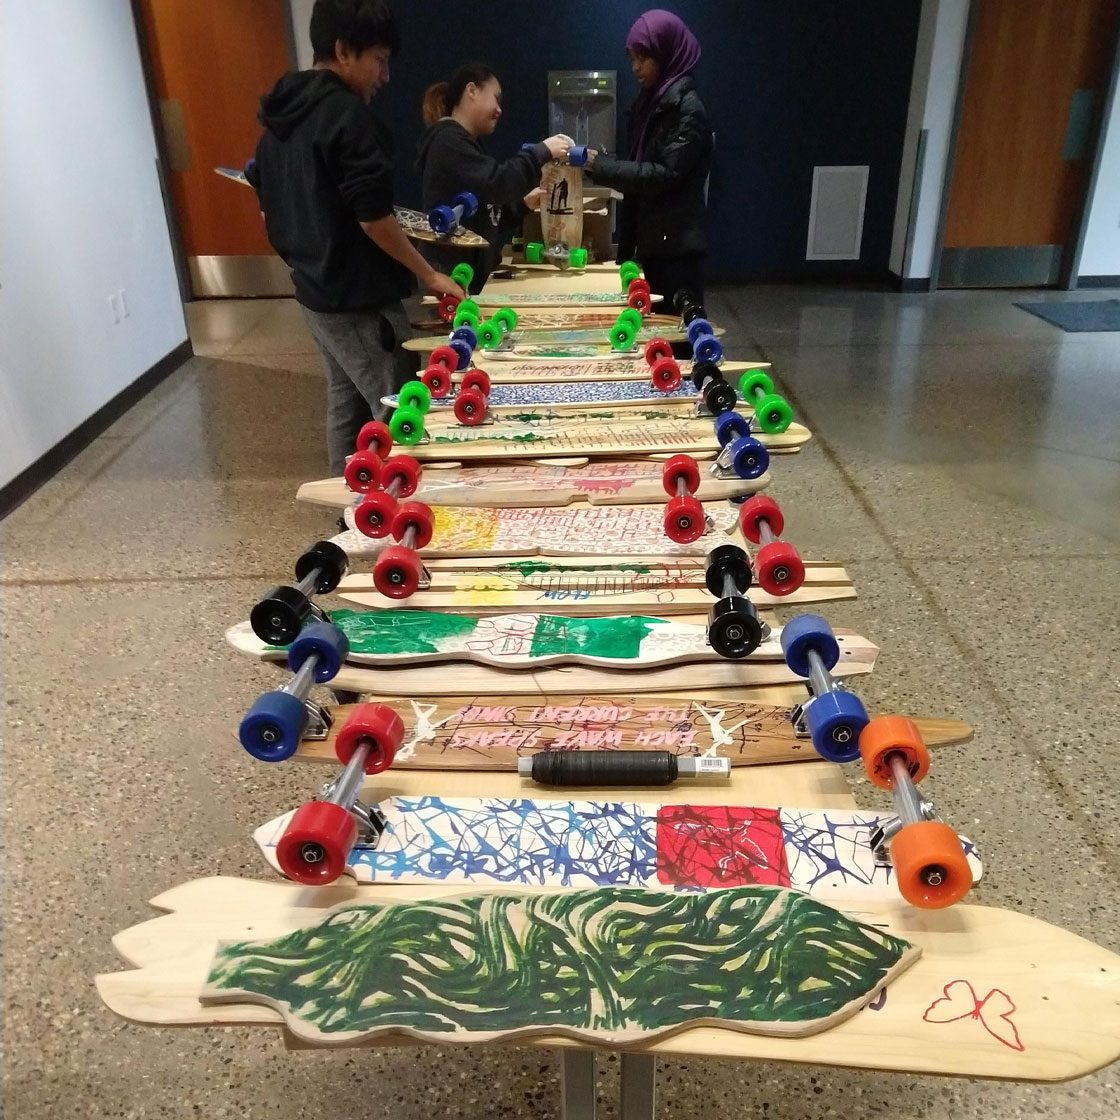 Decorative longboards displayed on a table with students working on them.